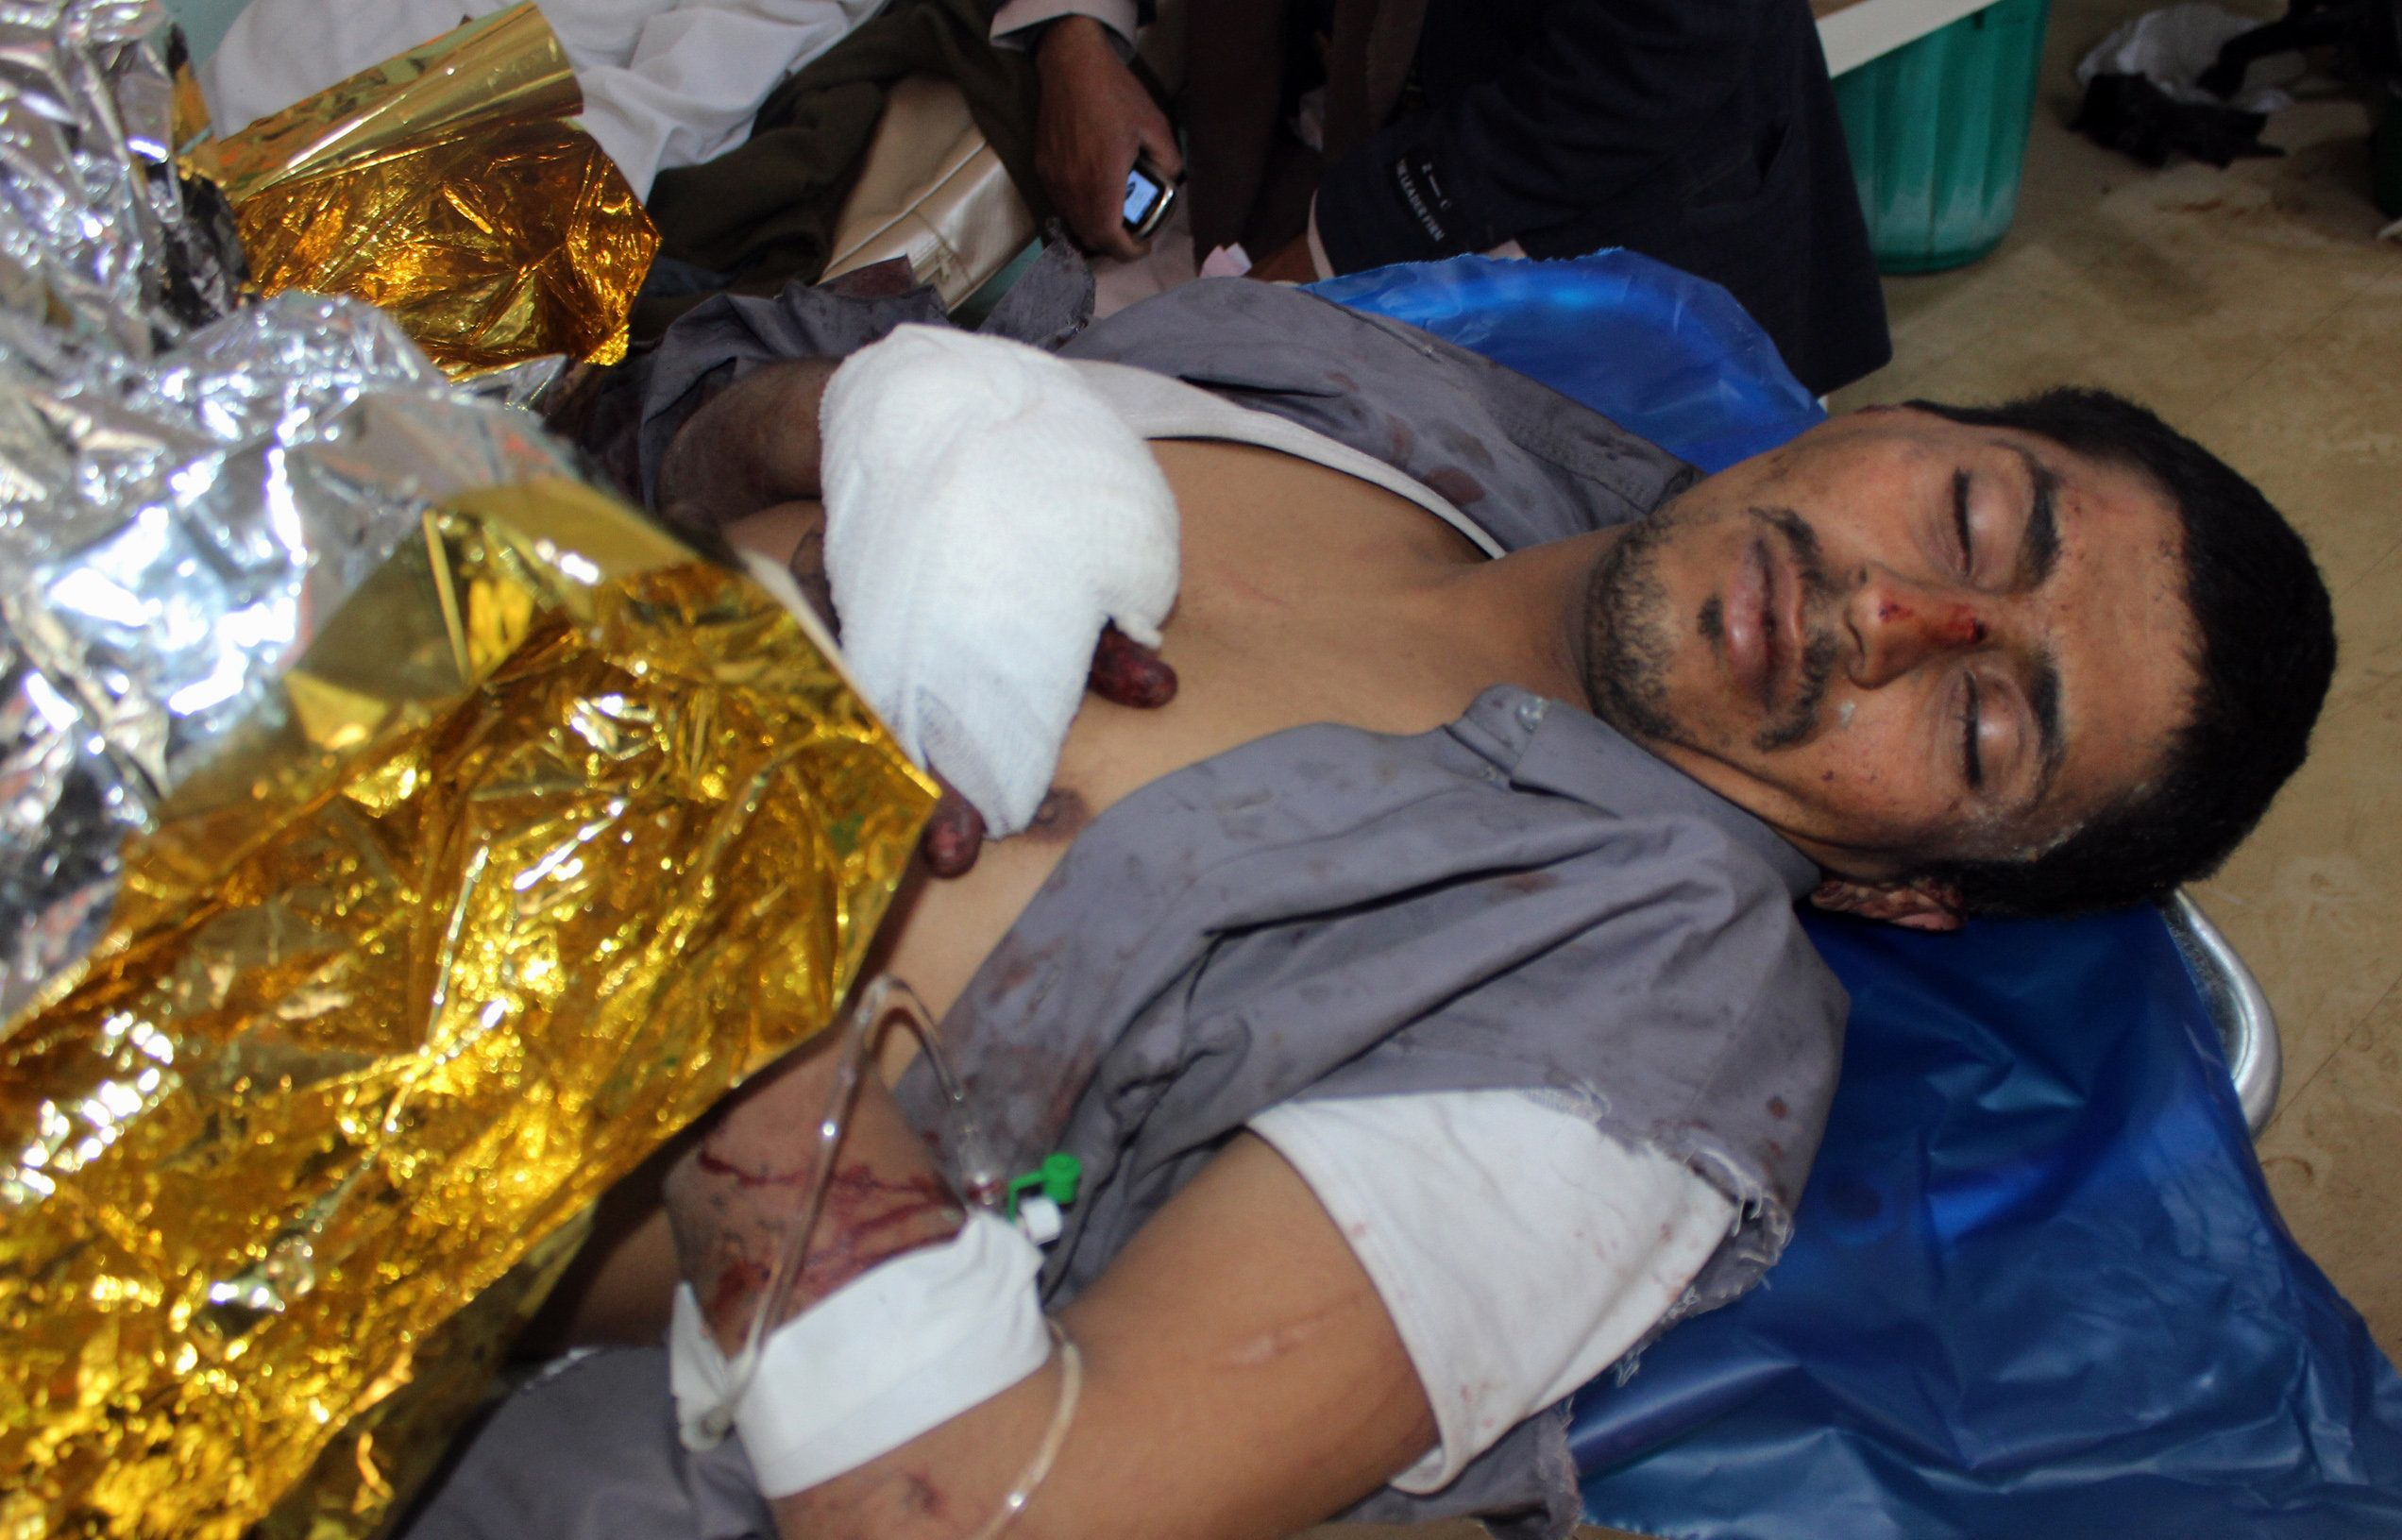 A Yemeni man reportedly wounded in a Saudi-led coalition air strike lies on a hospital bed in the northwestern city of Saada, on December 3, 2018. - The United Nations has described Yemen as the world's worst humanitarian disaster, with at least 10,000 people killed since the Saudi-led coalition intervened in 2015 to bolster the embattled government. (Photo by STRINGER / AFP)        (Photo credit should read STRINGER/AFP/Getty Images)